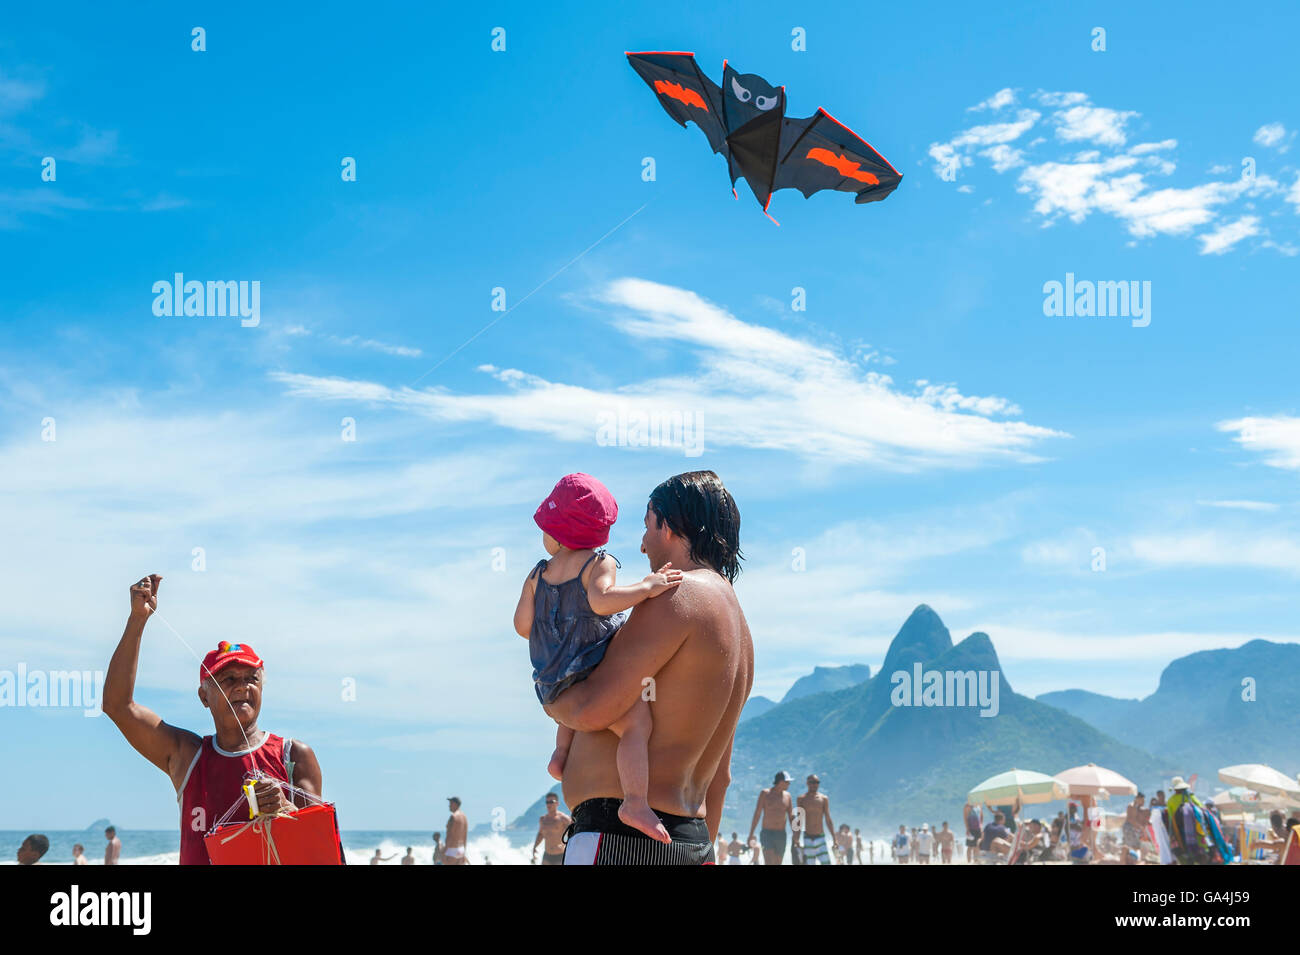 RIO DE JANEIRO - MARCH 10, 2013: A beach vendor selling kites displays his merchandise for a father and child on - Stock Image